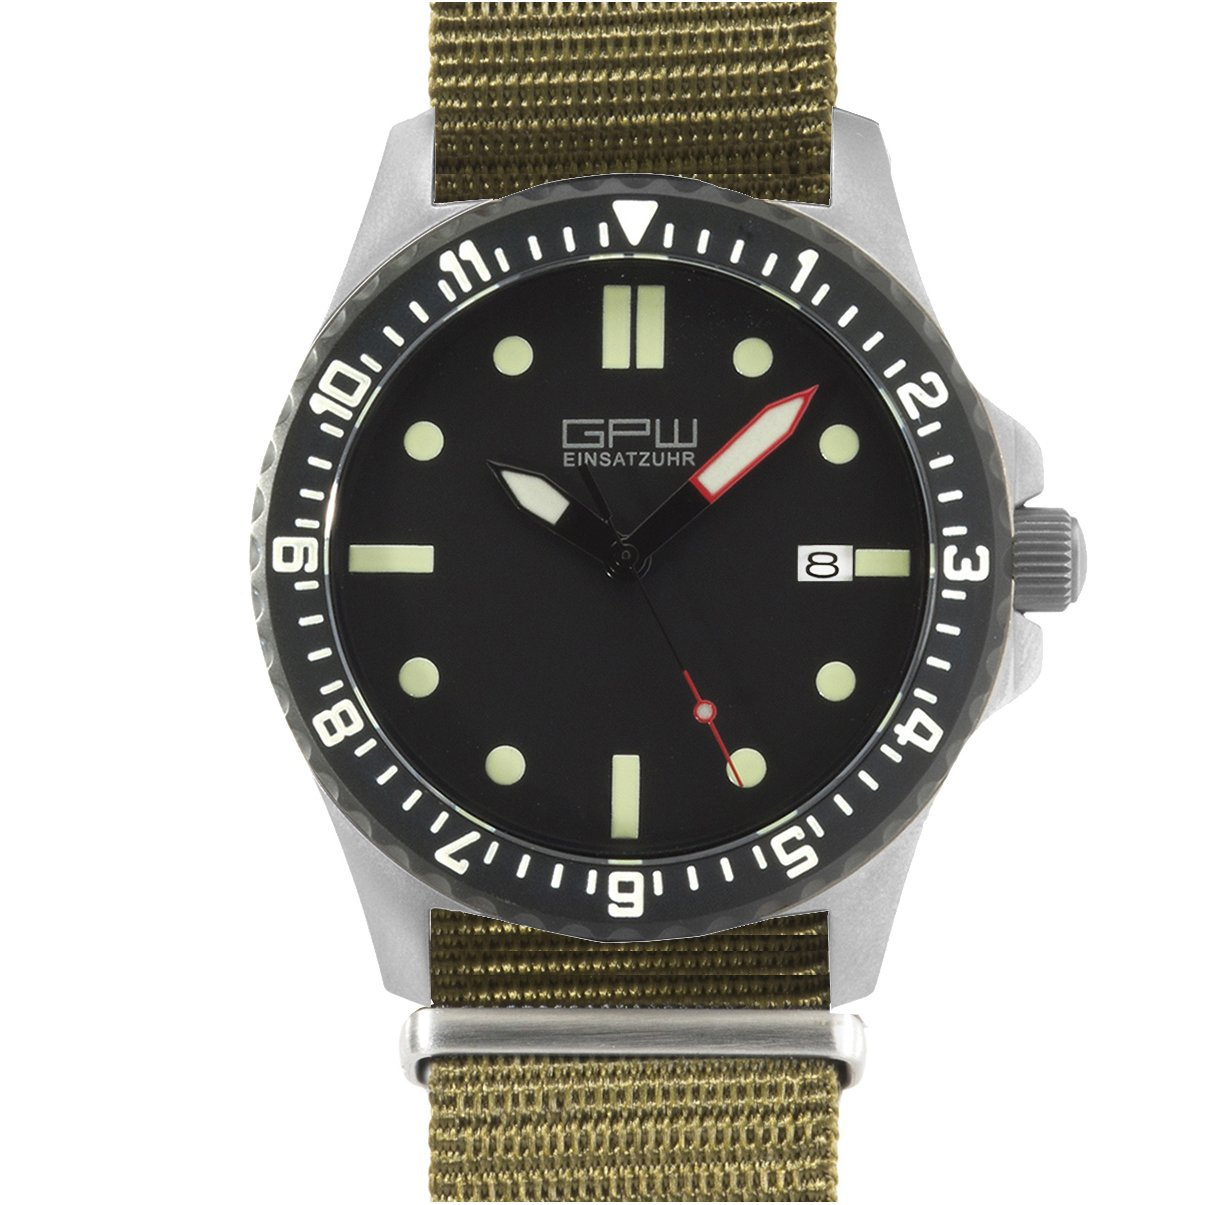 Amazon.com: German Military Titanium Automatic Watch. GPW Date. 200M W/R. Sapphire Crystal. Olive Nylon Strap.: Watches